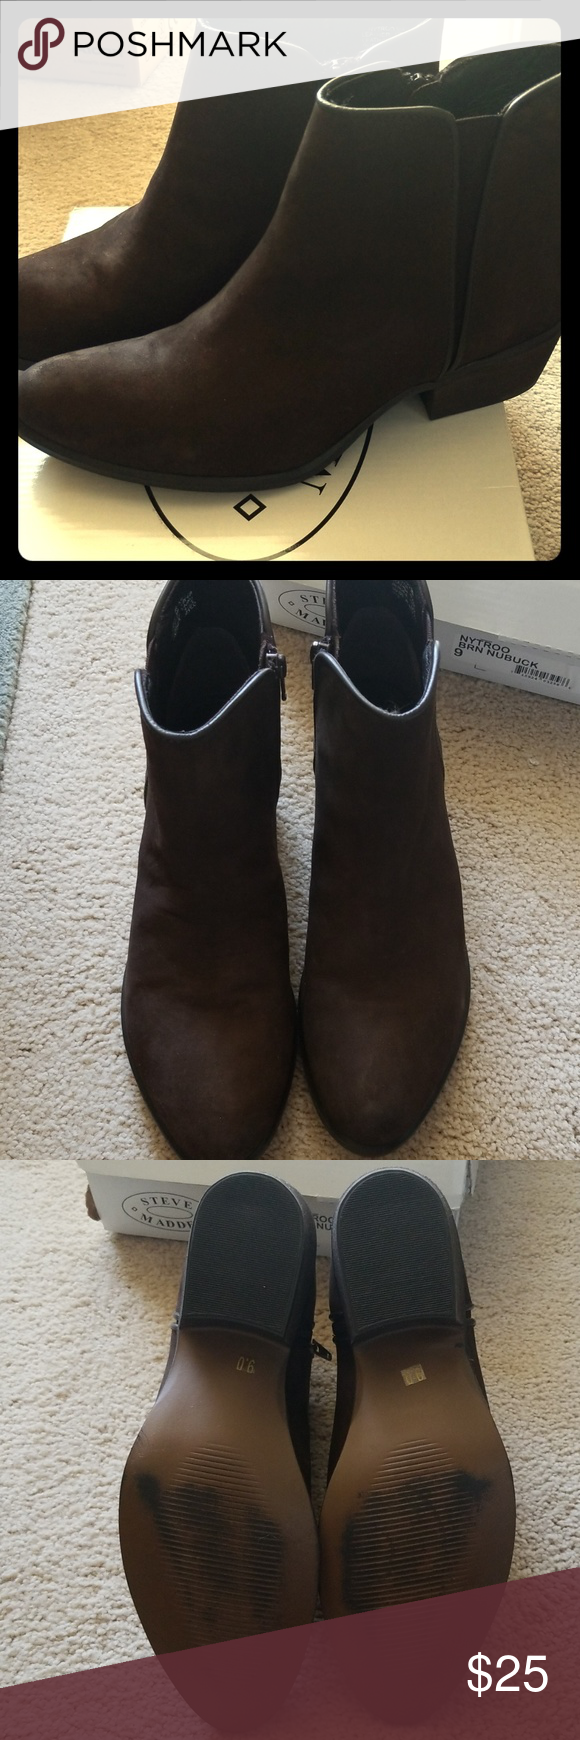 c13a3afce35 Booties Nytroo brown nubuck booties. Worn only indoors. Steve Madden Shoes  Ankle Boots